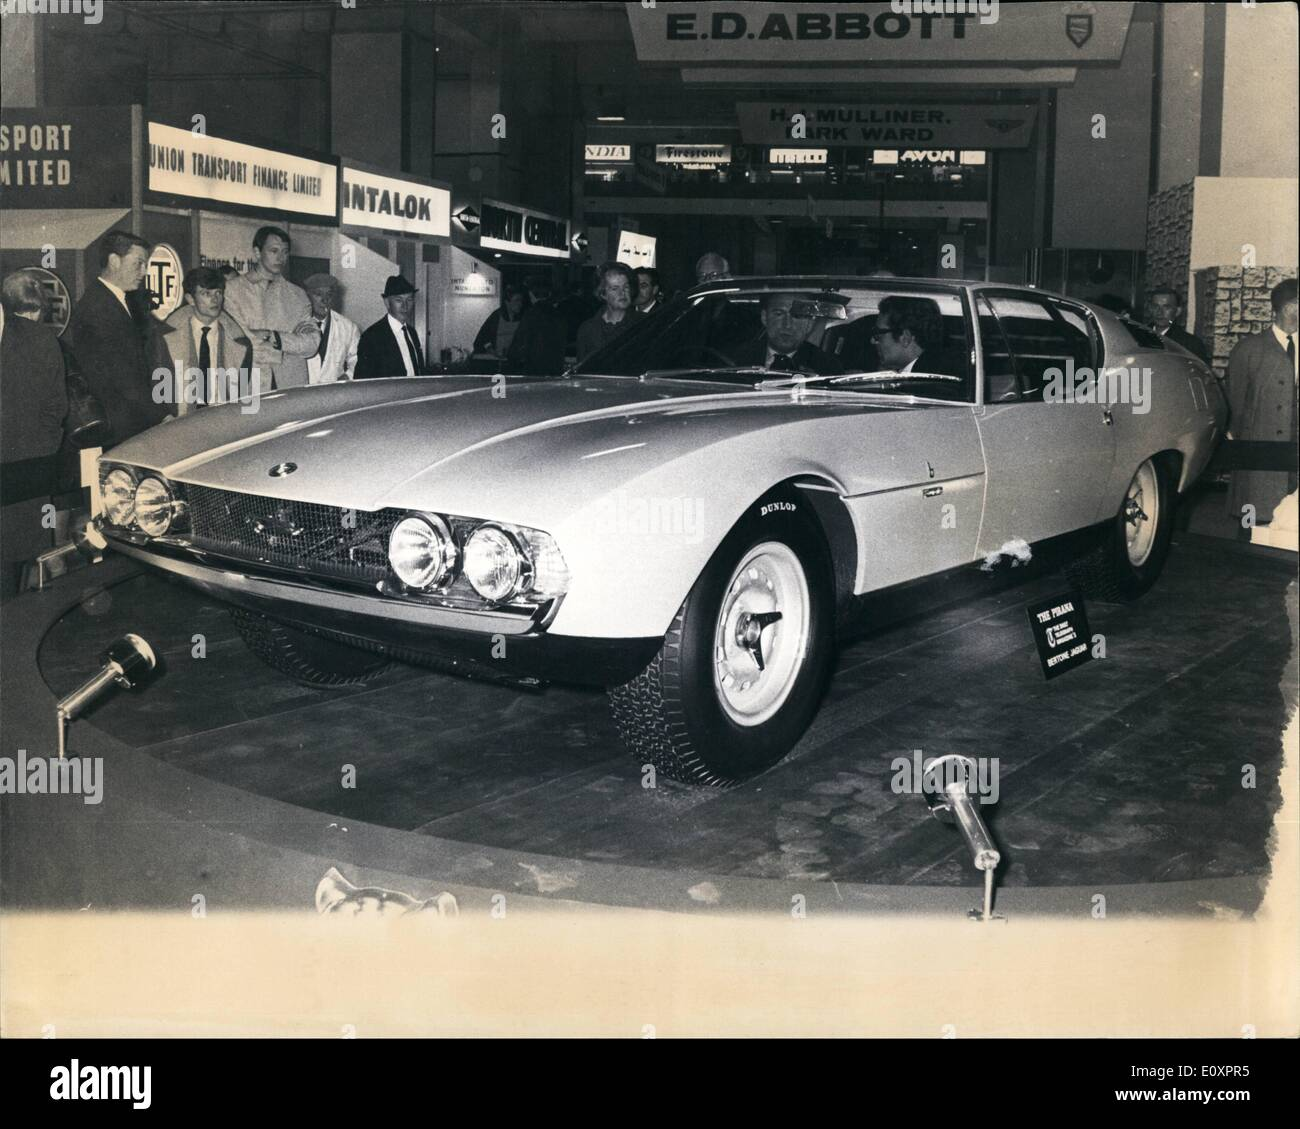 Oct. 10, 1967 - Press preview of the Motor Show, The Ideal Car: Motoring comfort from the luxury bracket one upmanship that comes from exclusive styling in exterior and interior coachwork, the security of built in safety vital to high road performance and matching a maximum speed in the 140 mph range. These were the ideas that went into ''the ideal car'' of the Daily Telegraph Magazine and desirable sports coupe which is unveiled to the public at the Motor Show, which opens tomorrow at Earl's Court - Stock Image